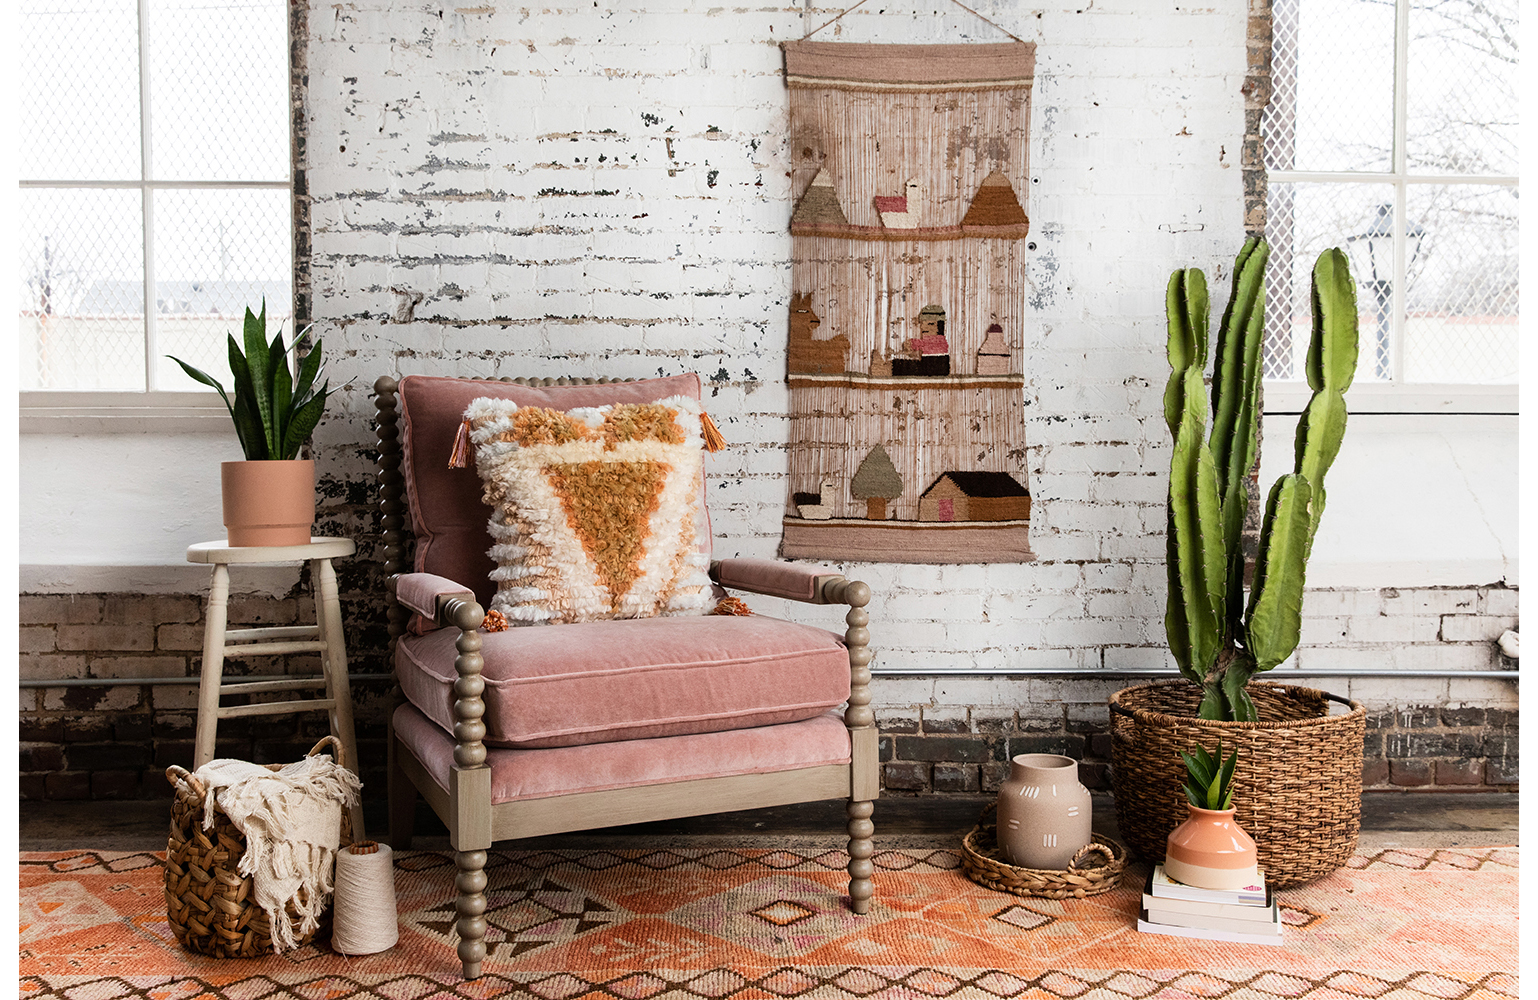 prop-styling-boho-chair-plant-interiors.jpg